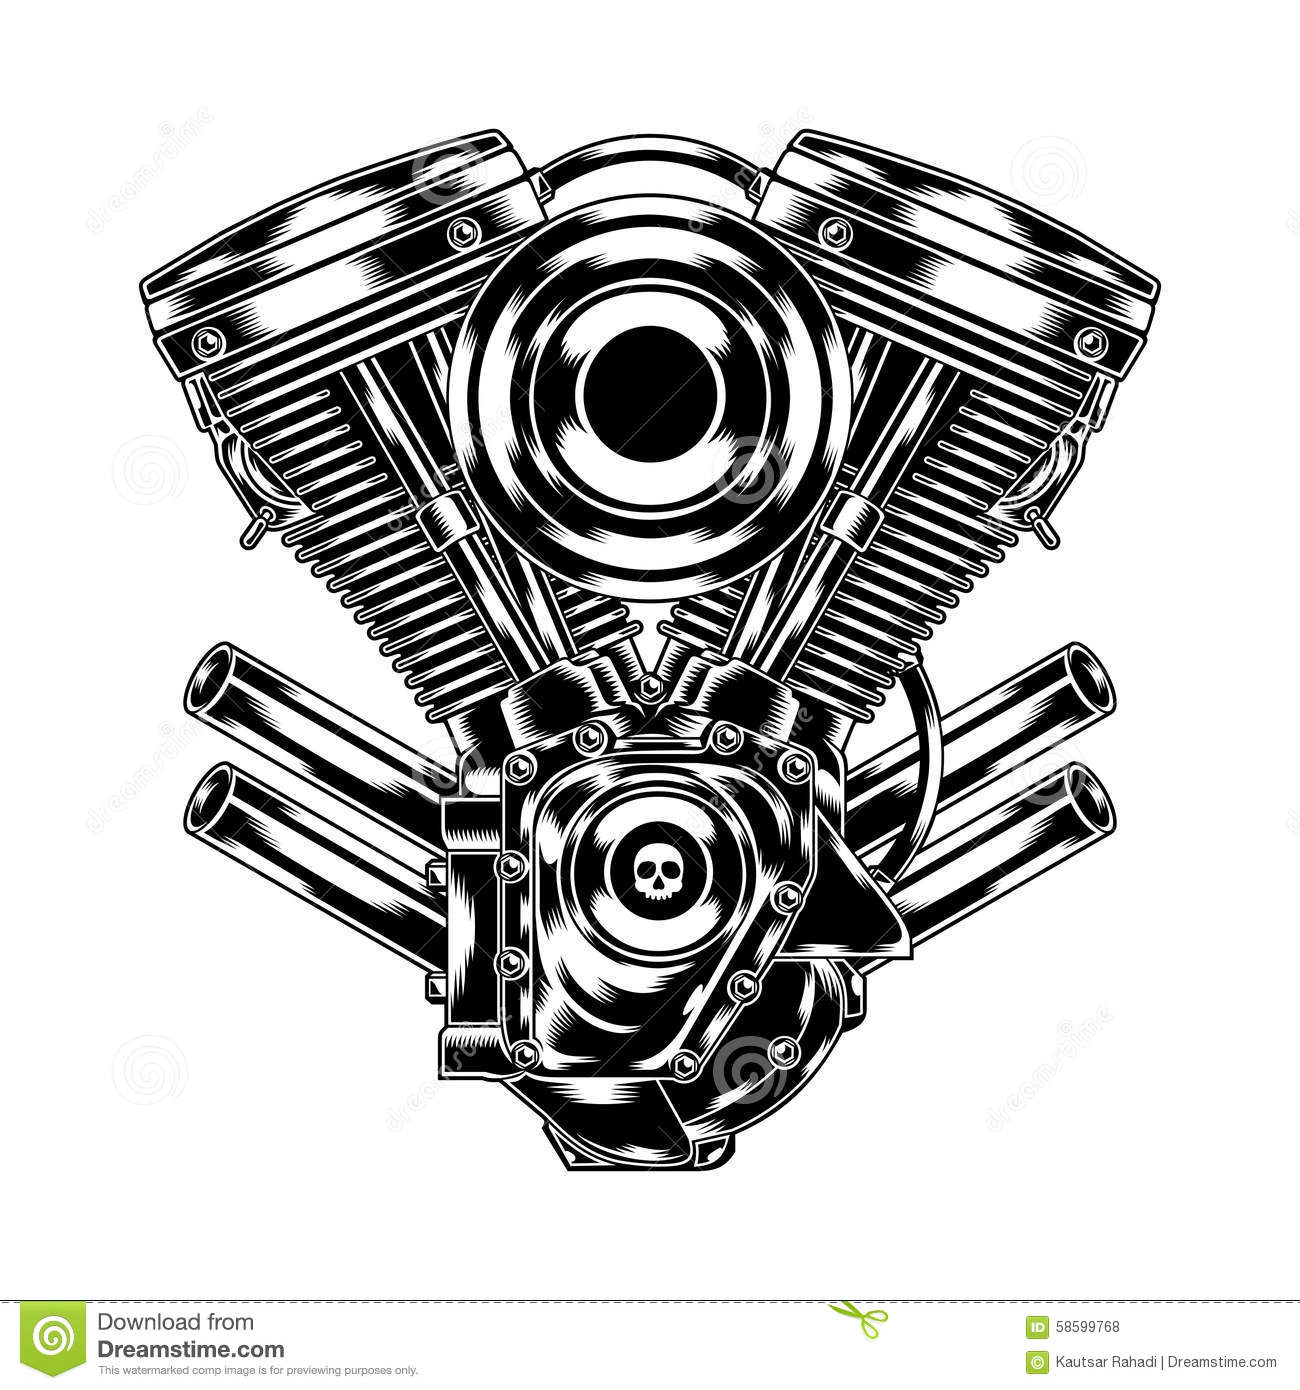 Stock Illustration Motorcycle Engine Illustration Chrome Look Suitable Graphic Element Apparel Other Design Needs Non Layered Image58599768 on car audio art